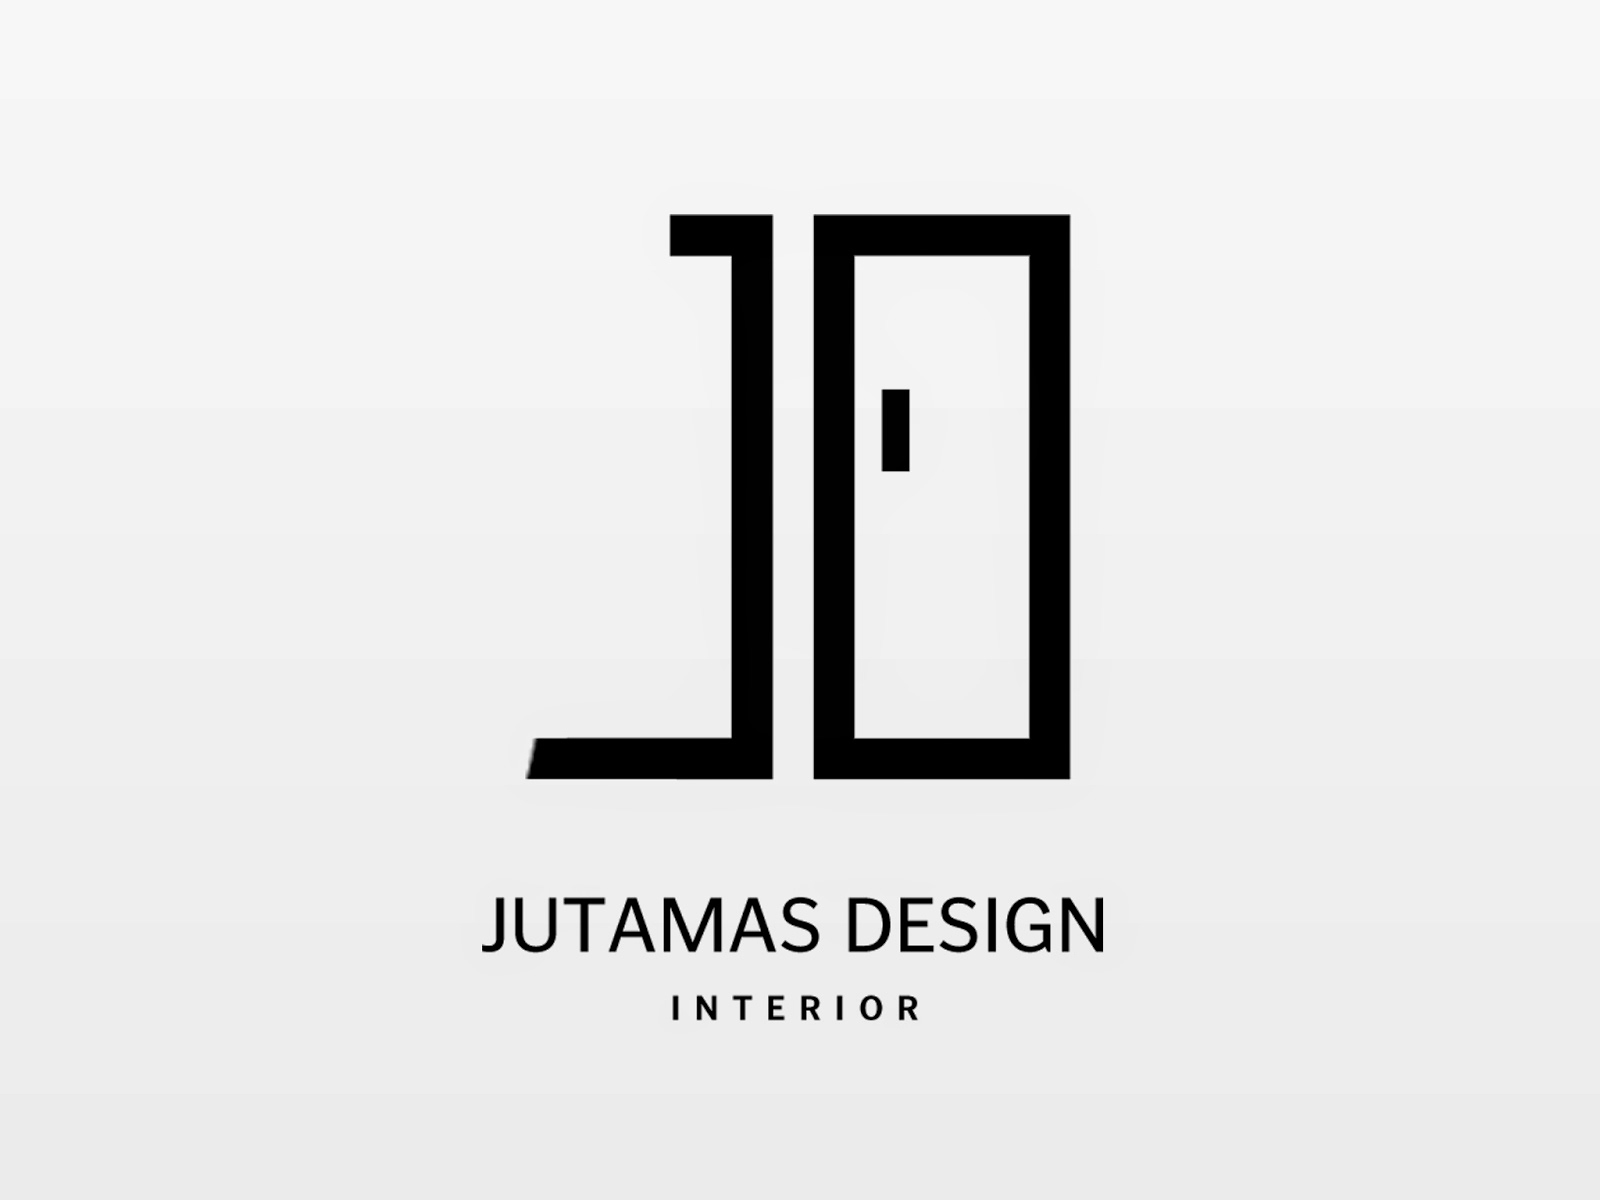 Yet Another Interior Design Logos Ideas for Your ...